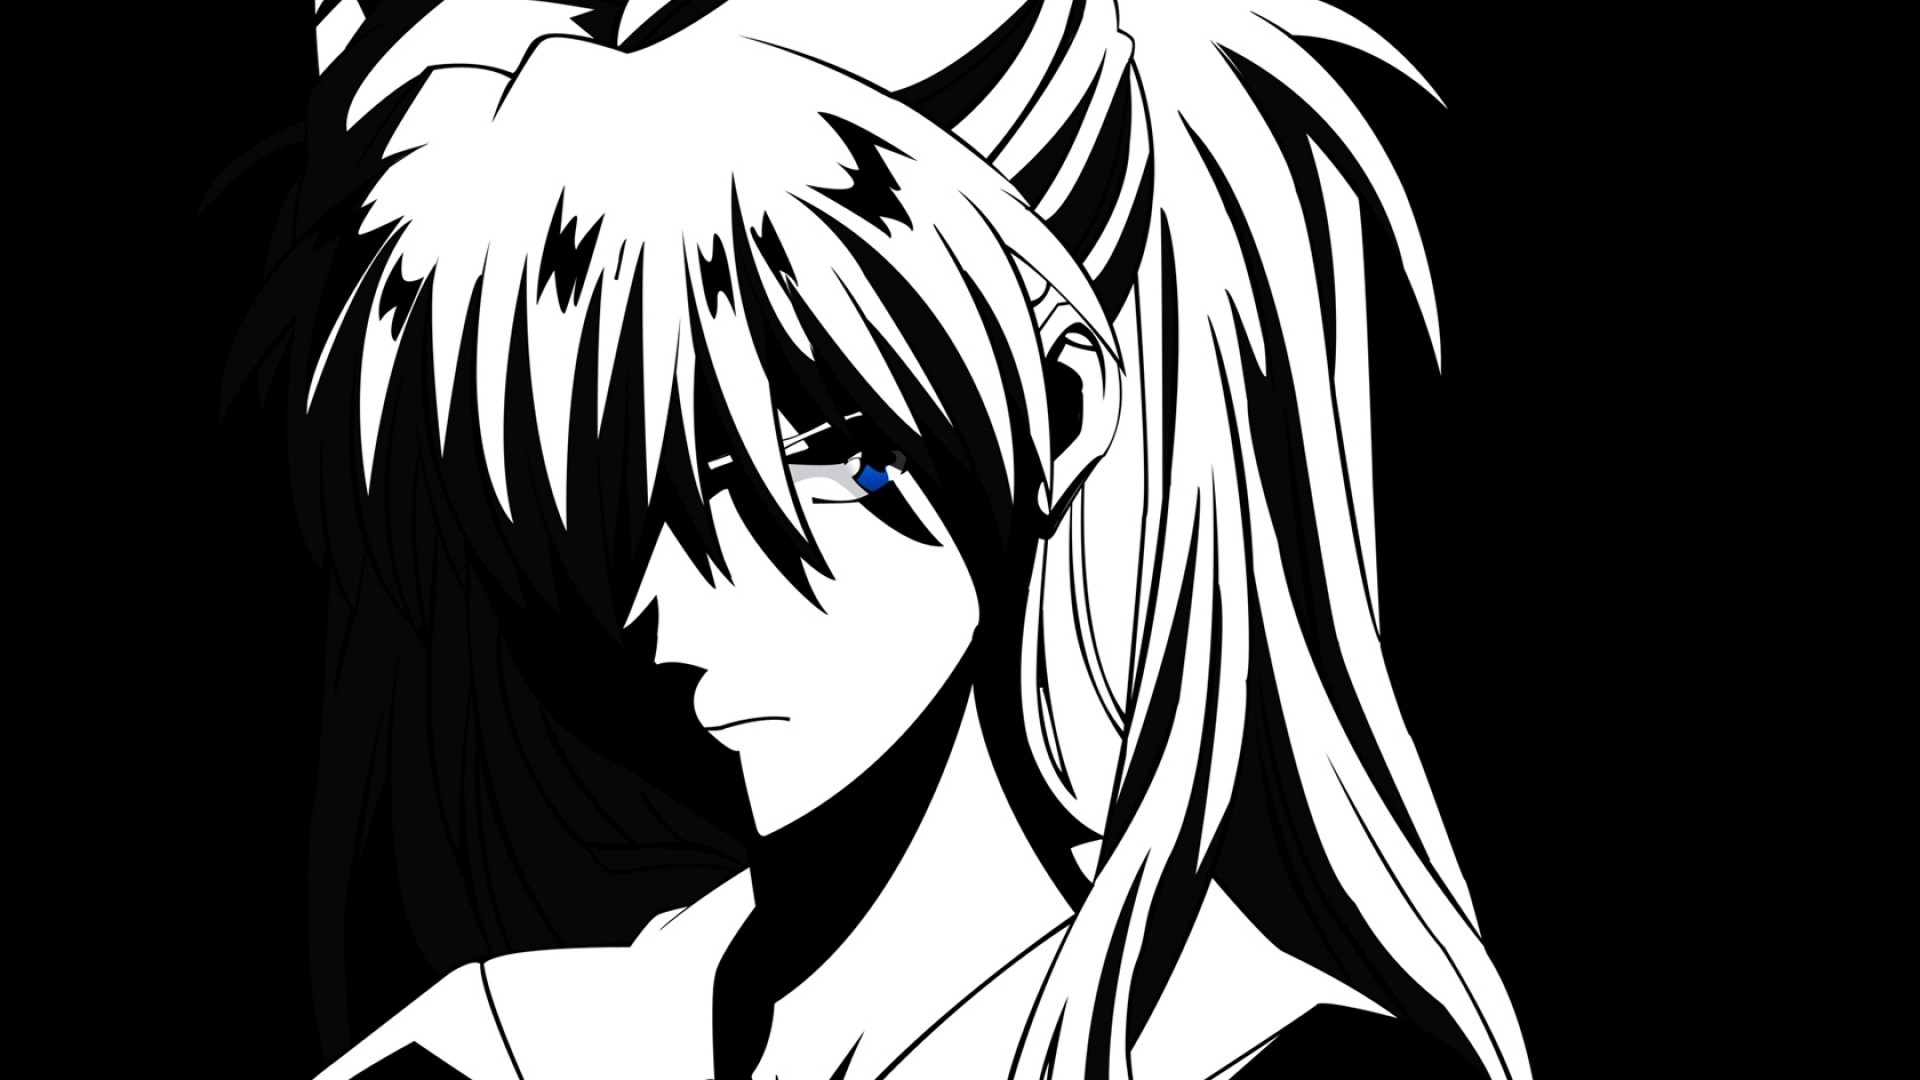 Anime Black And White Image